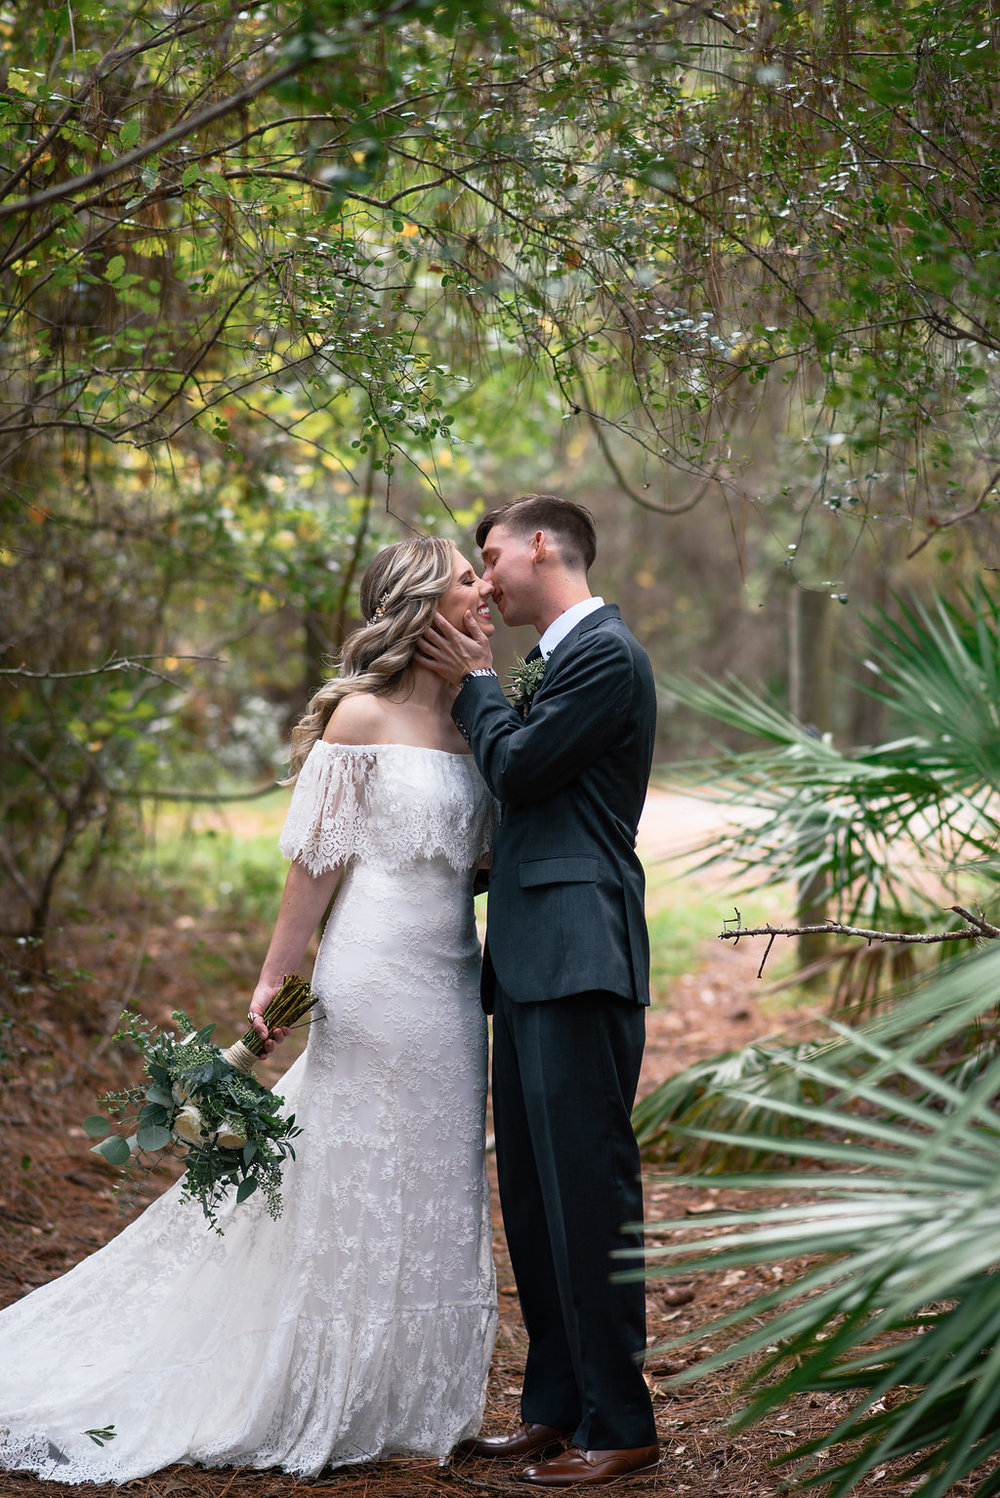 ivory-and-beau-bridal-boutique-meg-hill-photography-laurence-daughters-of-simone-boho-wedding-gown-douglas-ga-wedding-12.jpg